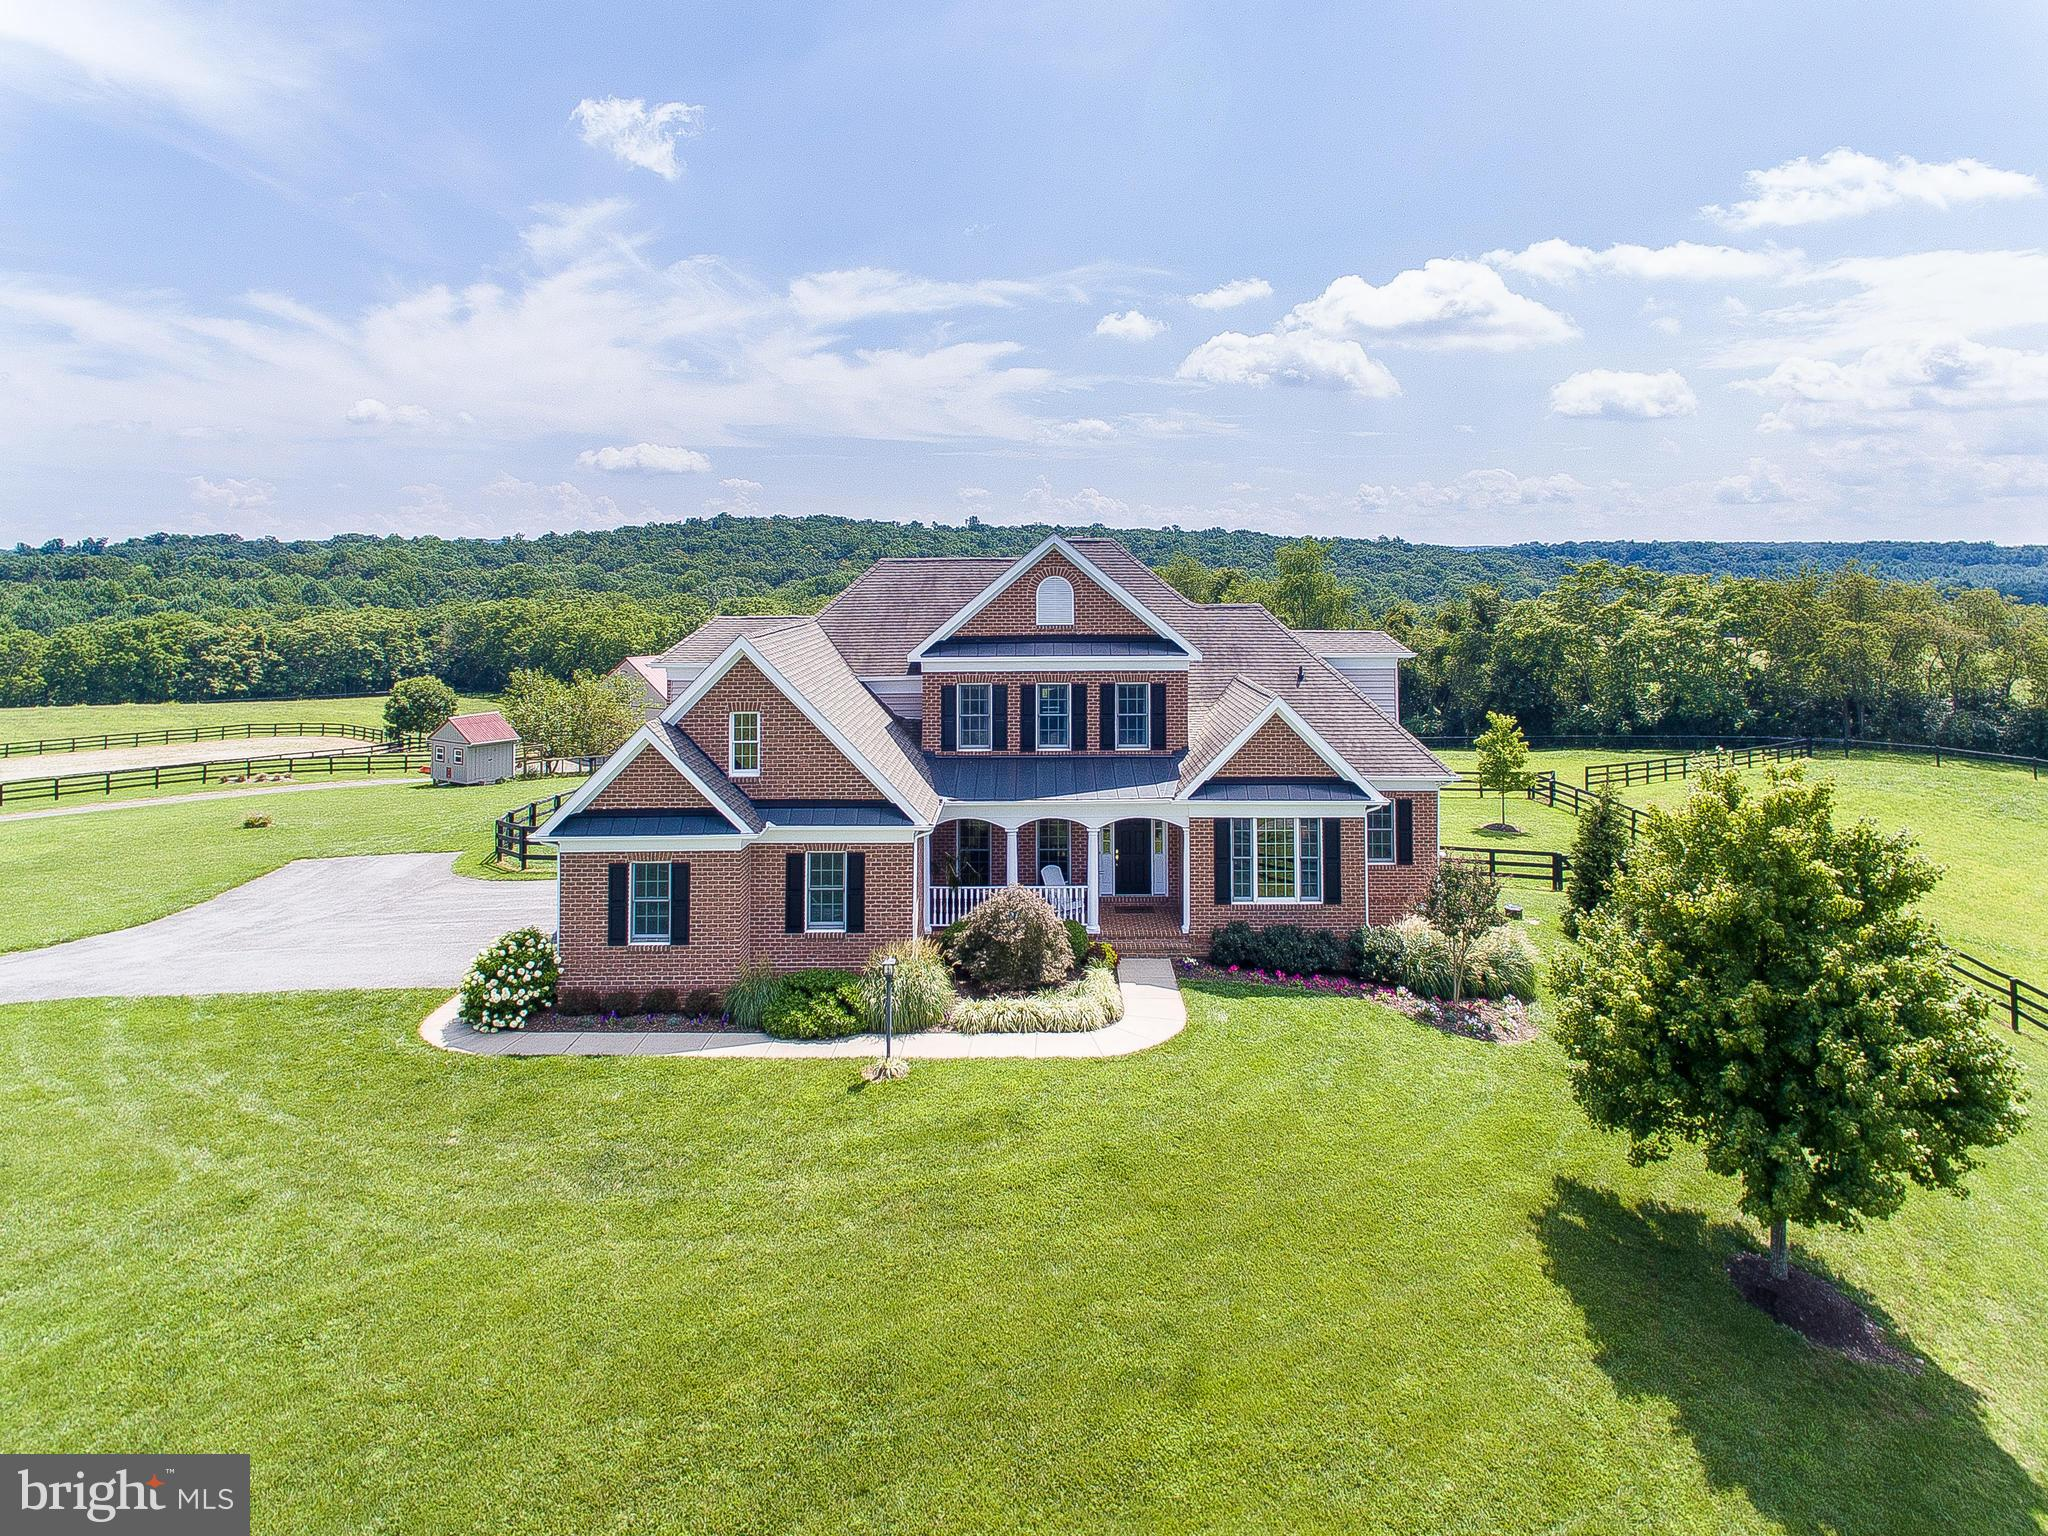 9221 ALBAUGH ROAD, NEW WINDSOR, MD 21776